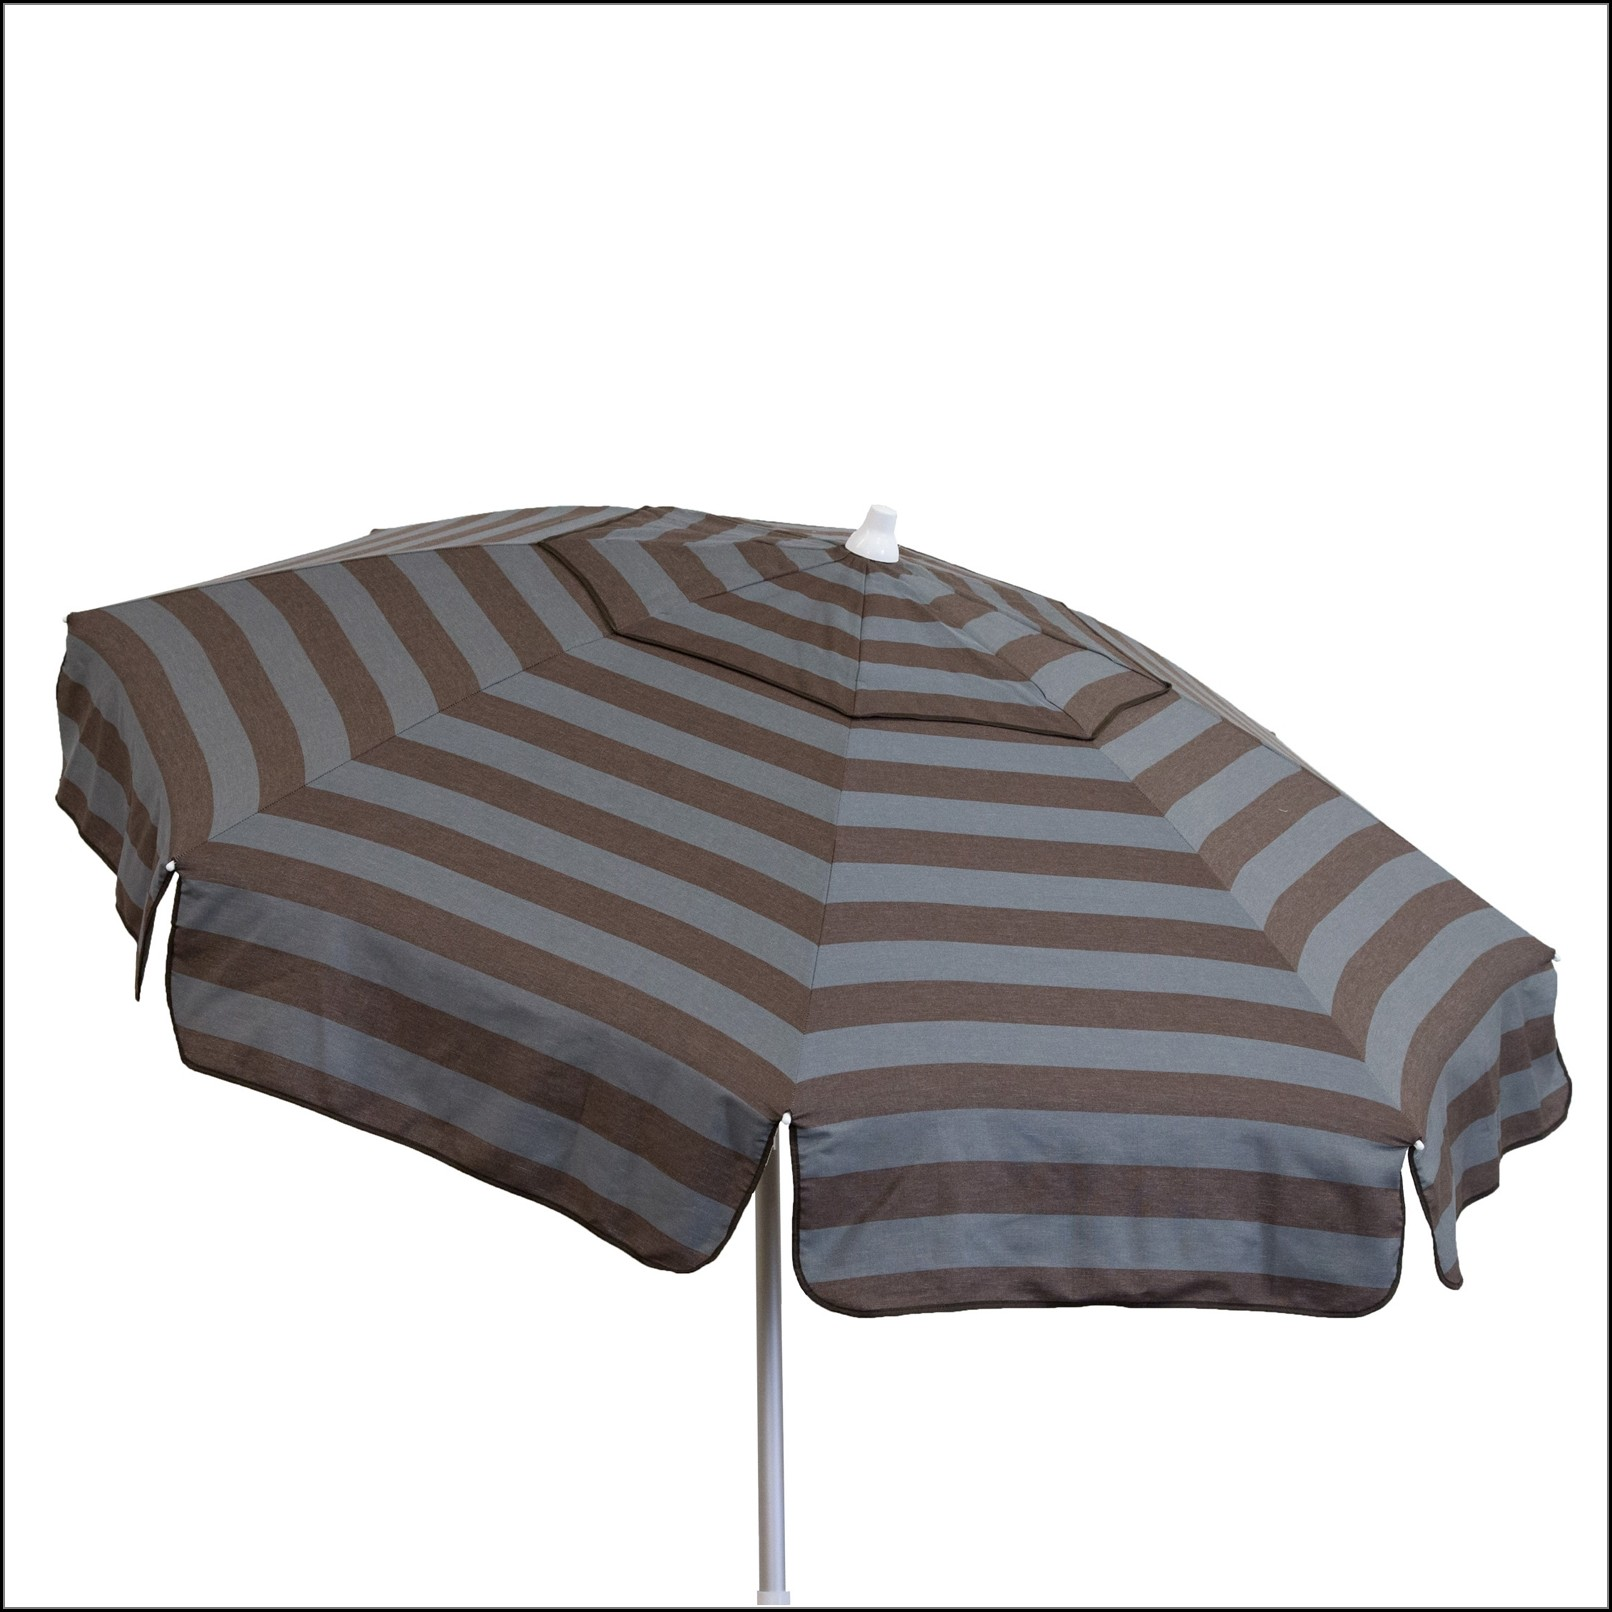 Grey Striped Patio Umbrella